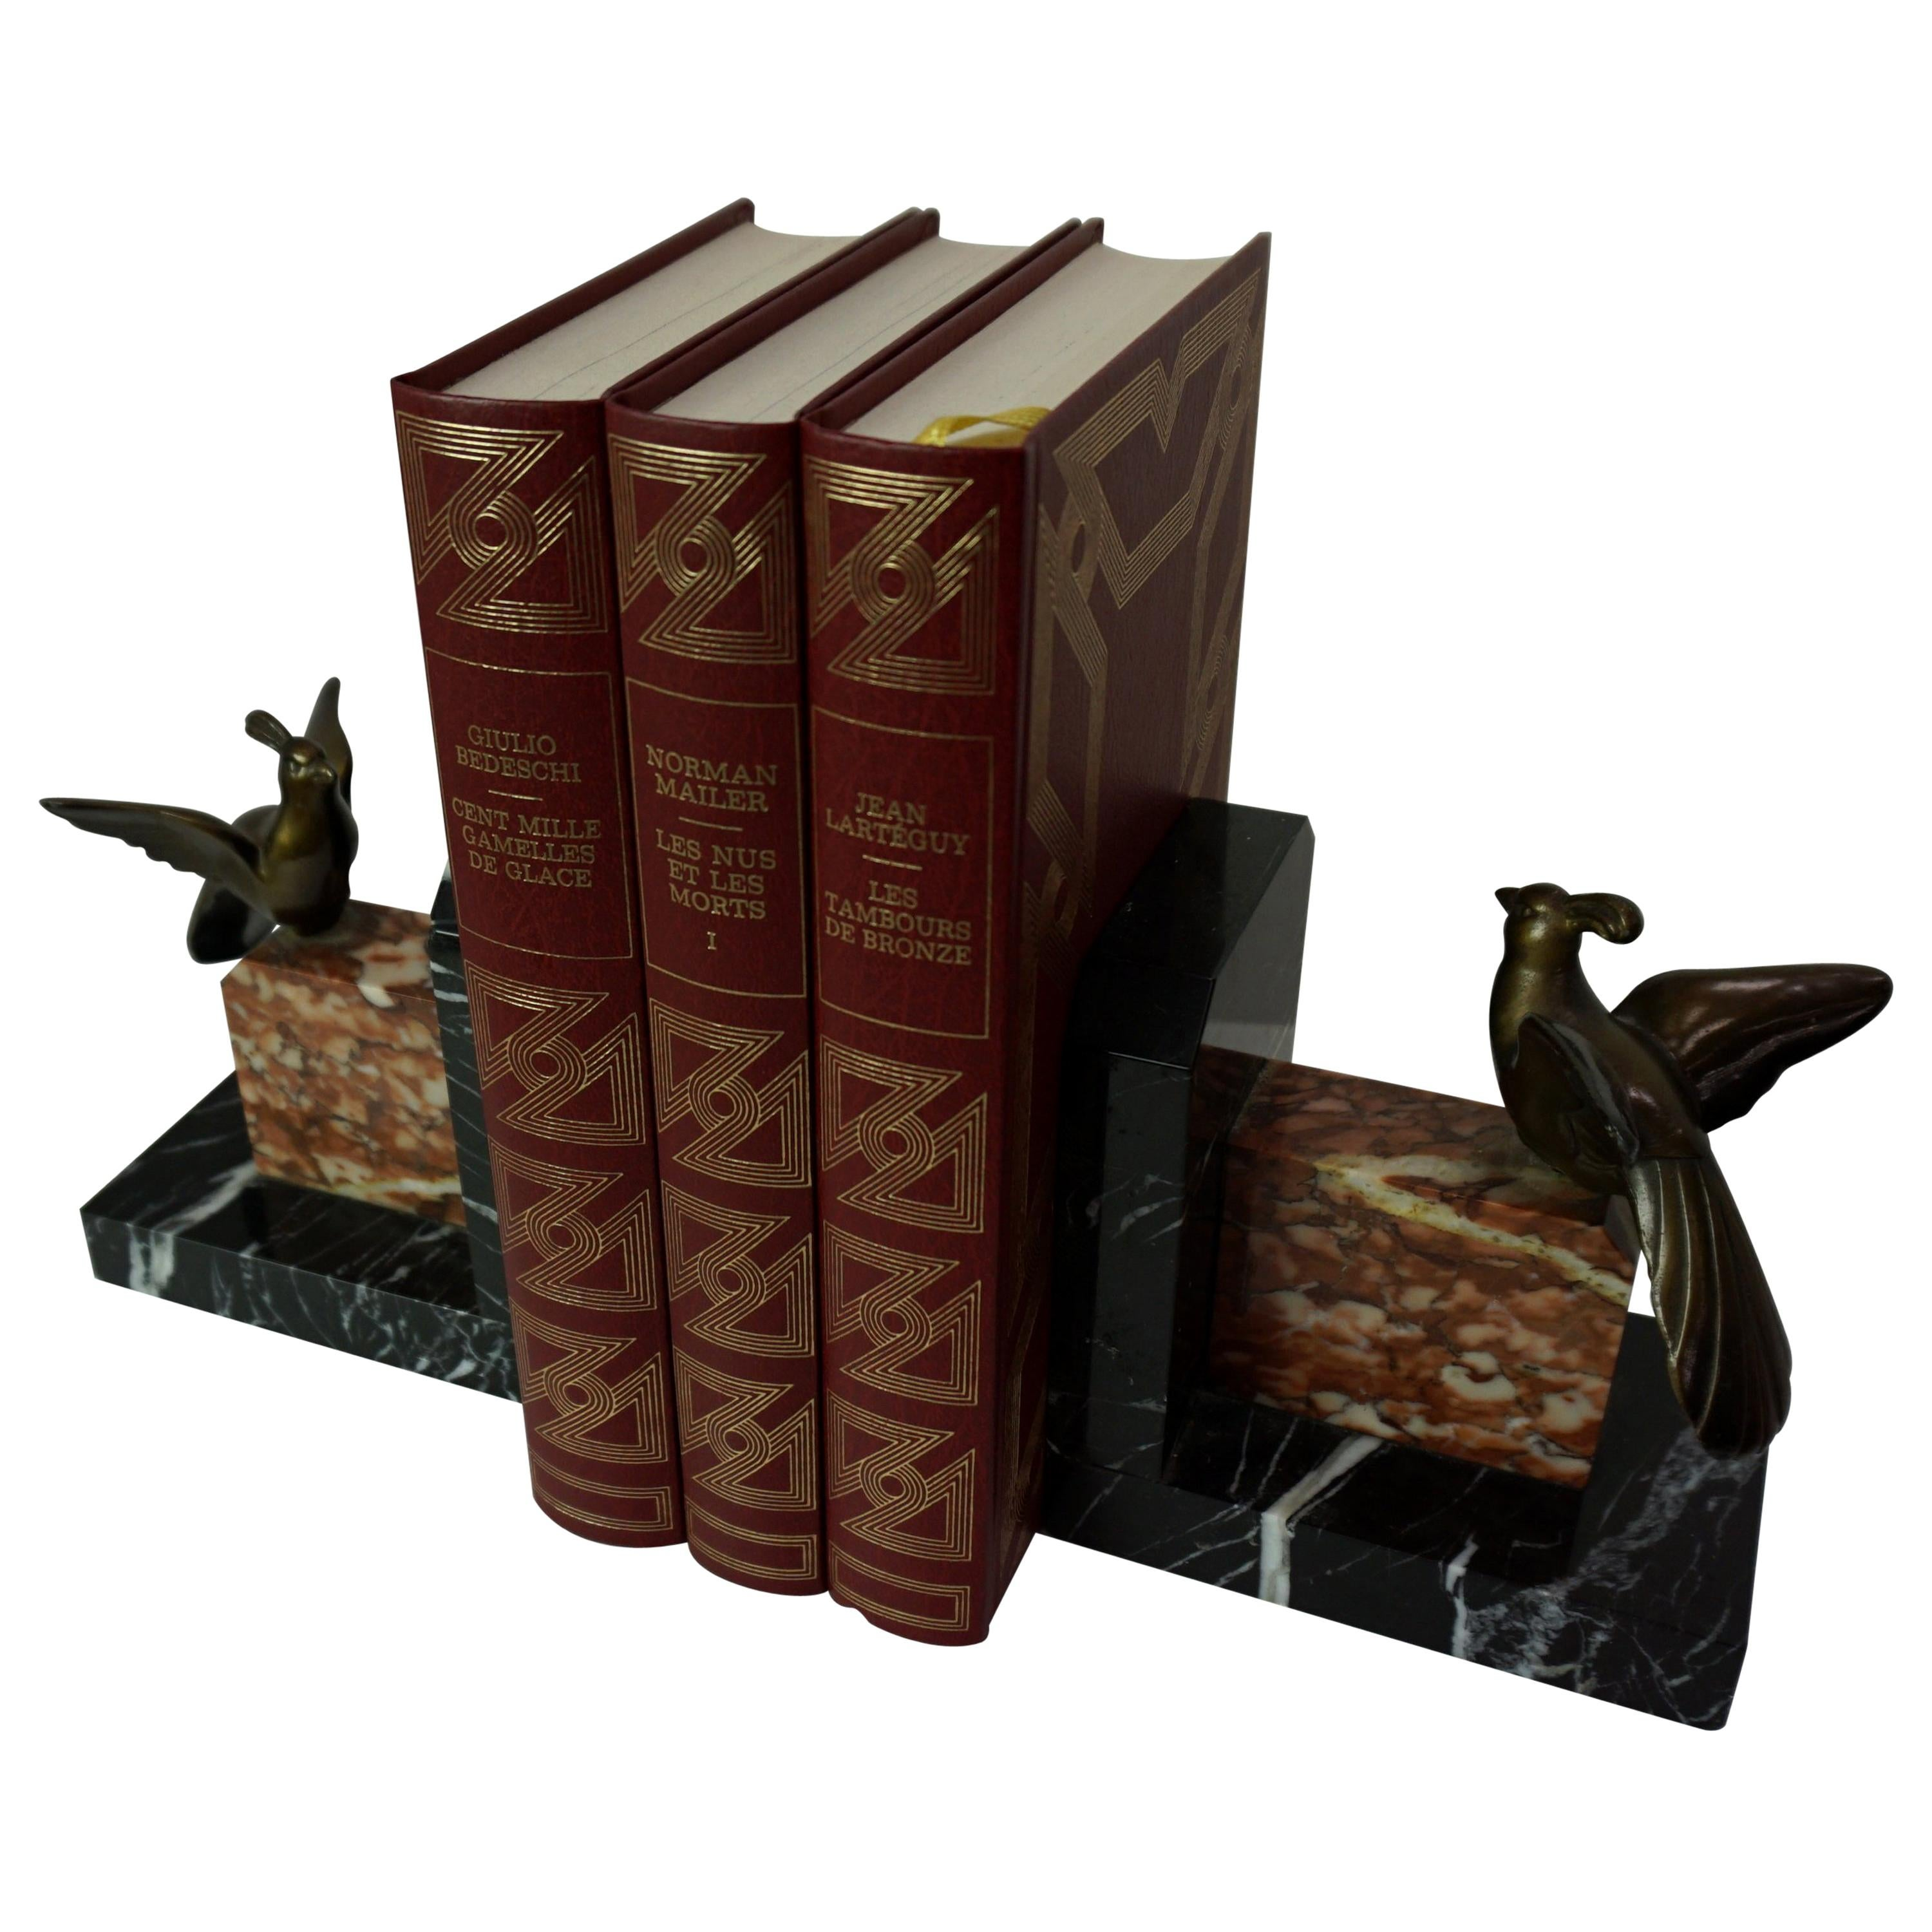 1930s Art Deco Design Marble And Brass Woodcock Bookends